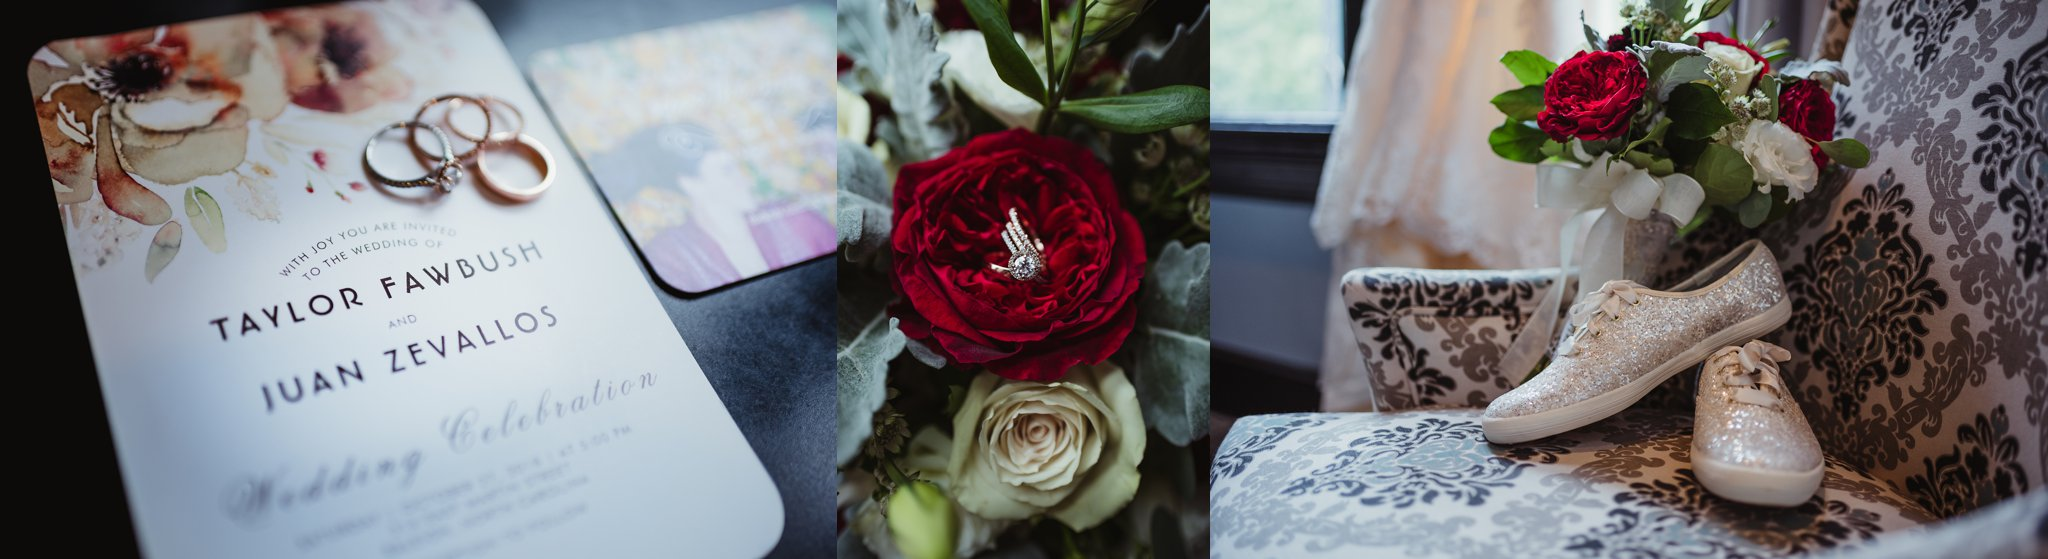 Wedding details include the invitation, rose gold wedding bands, and Kate Spade tennis shoes from the wedding in downtown Raleigh, photos by Rose Trail Images.